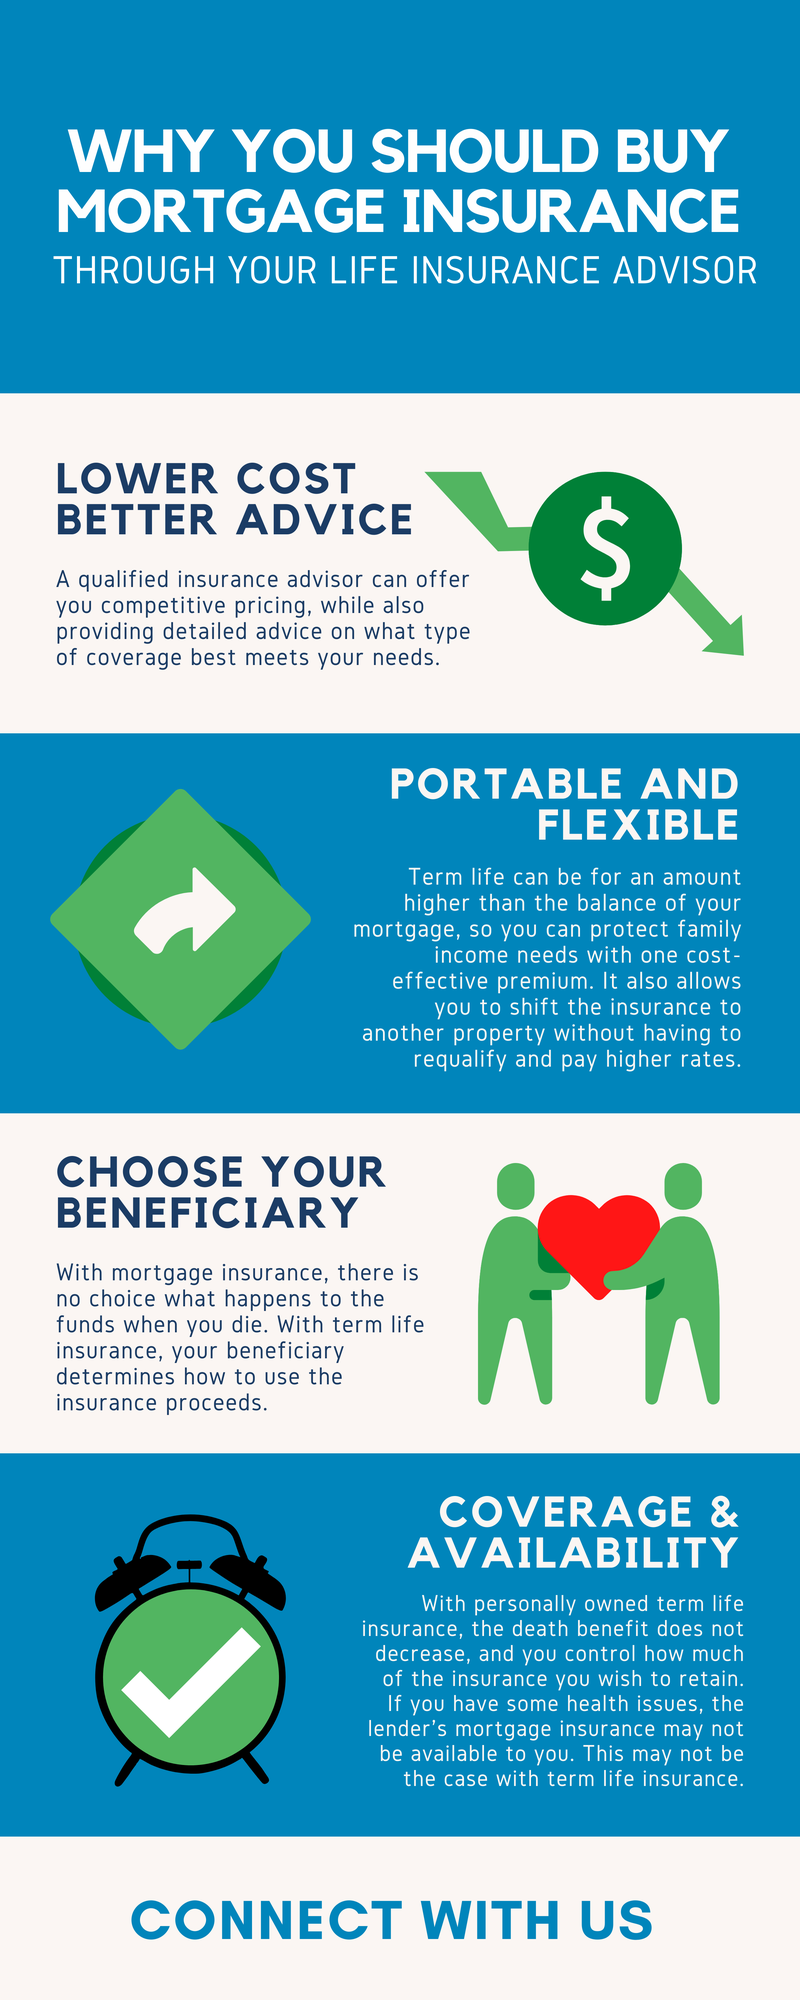 Why You Should Buy Mortgage Insurance Through Your Financial Advisor Revised 21Mar30.png